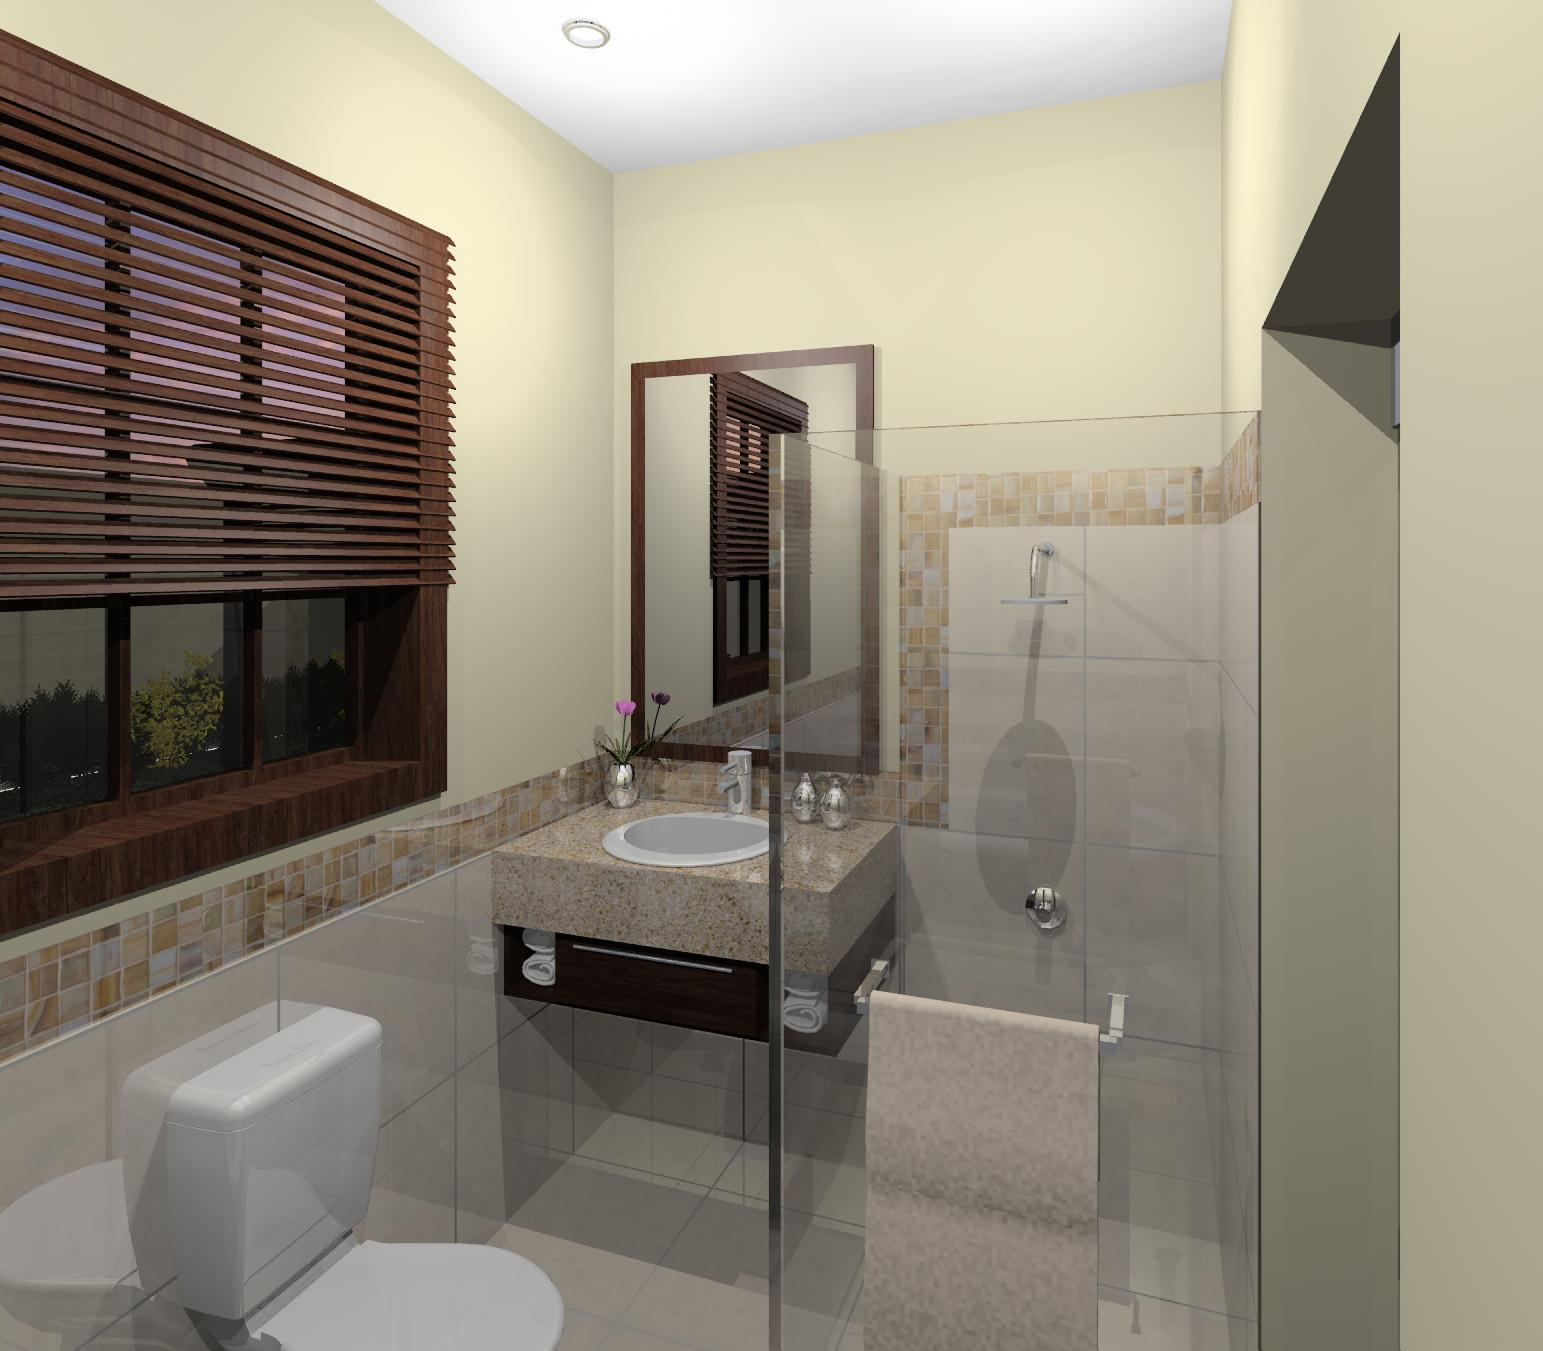 Top 28 7 x 4 bathroom designs bathroom bathroom x for 9x5 bathroom ideas